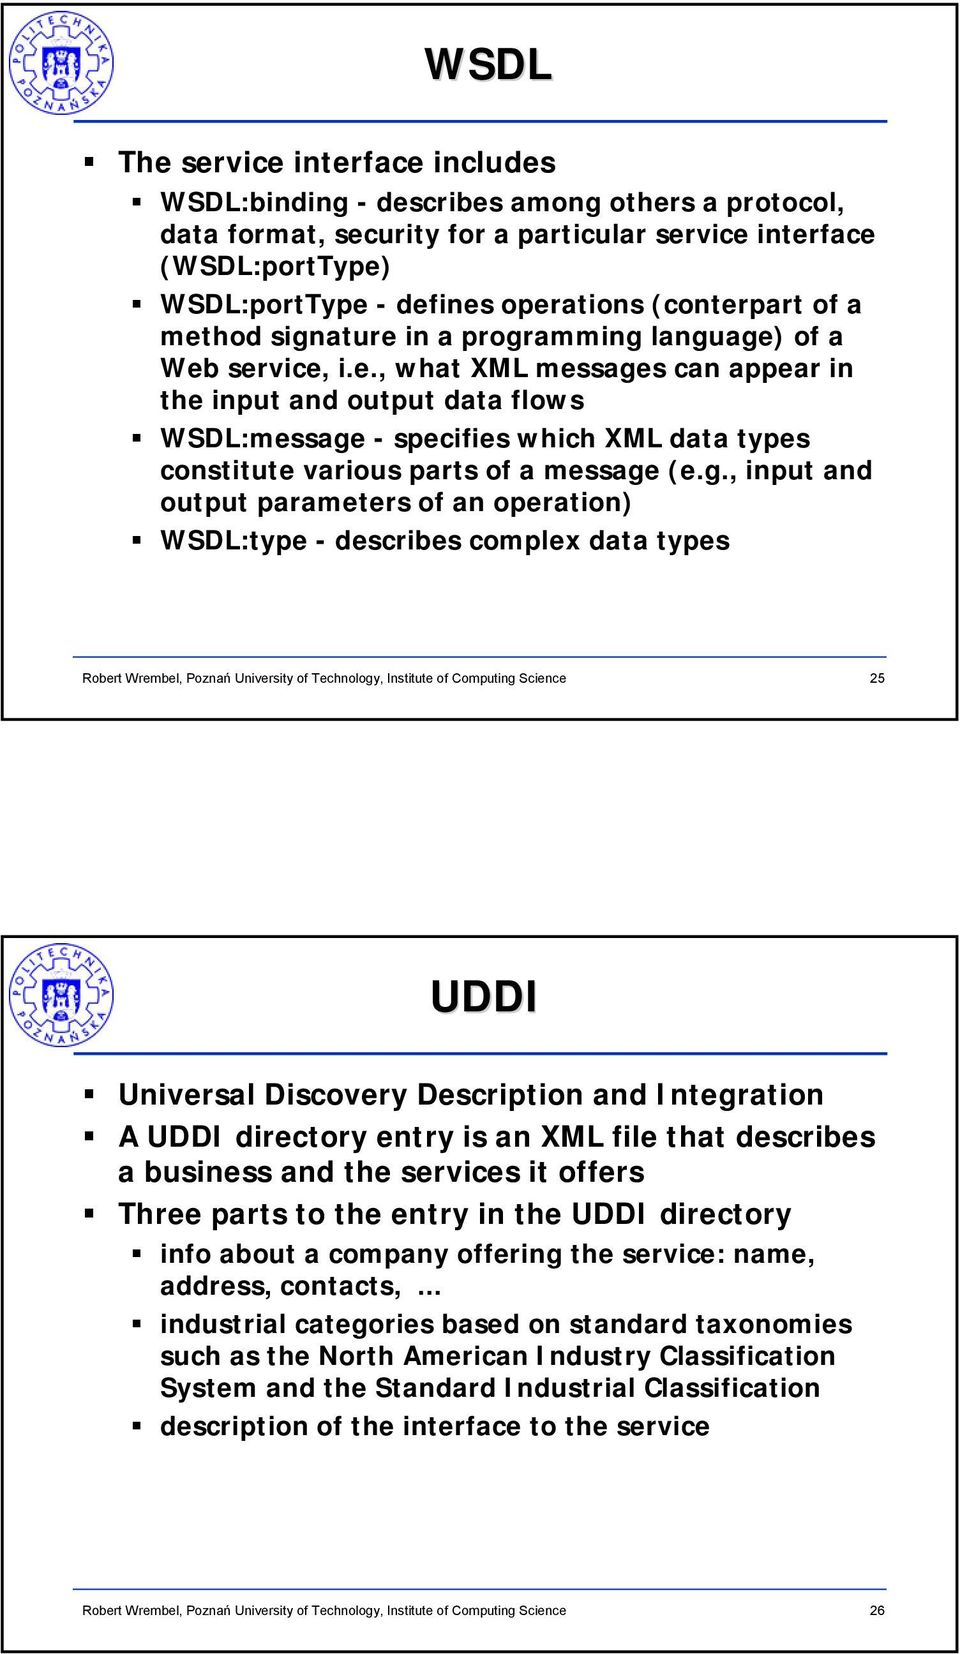 g., input and output parameters of an operation) WSDL:type - describes complex data types 25 UDDI Universal Discovery Description and Integration A UDDI directory entry is an XML file that describes